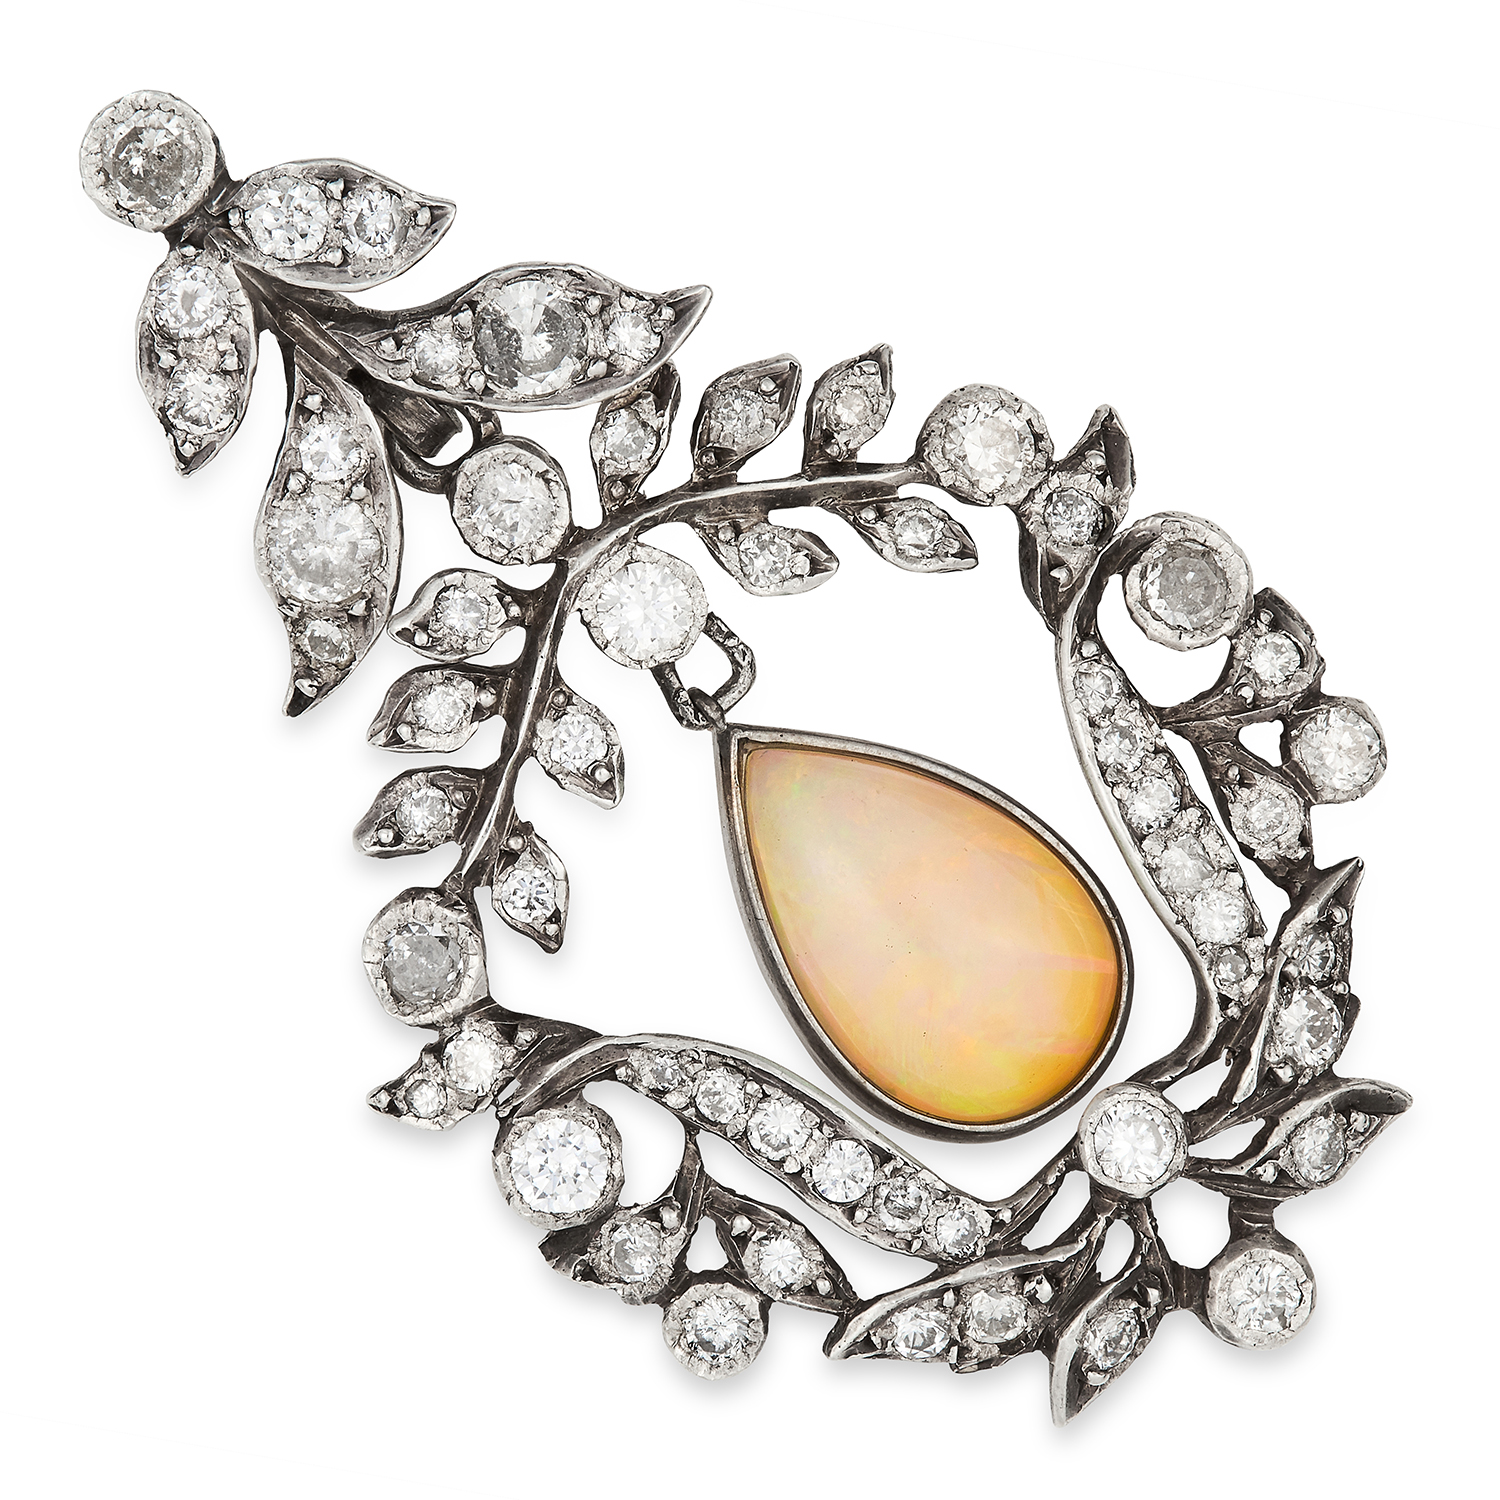 Los 28 - ANTIQUE OPAL AND DIAMOND PENDANT set with a pear cut opal in a foliate border set with round cut